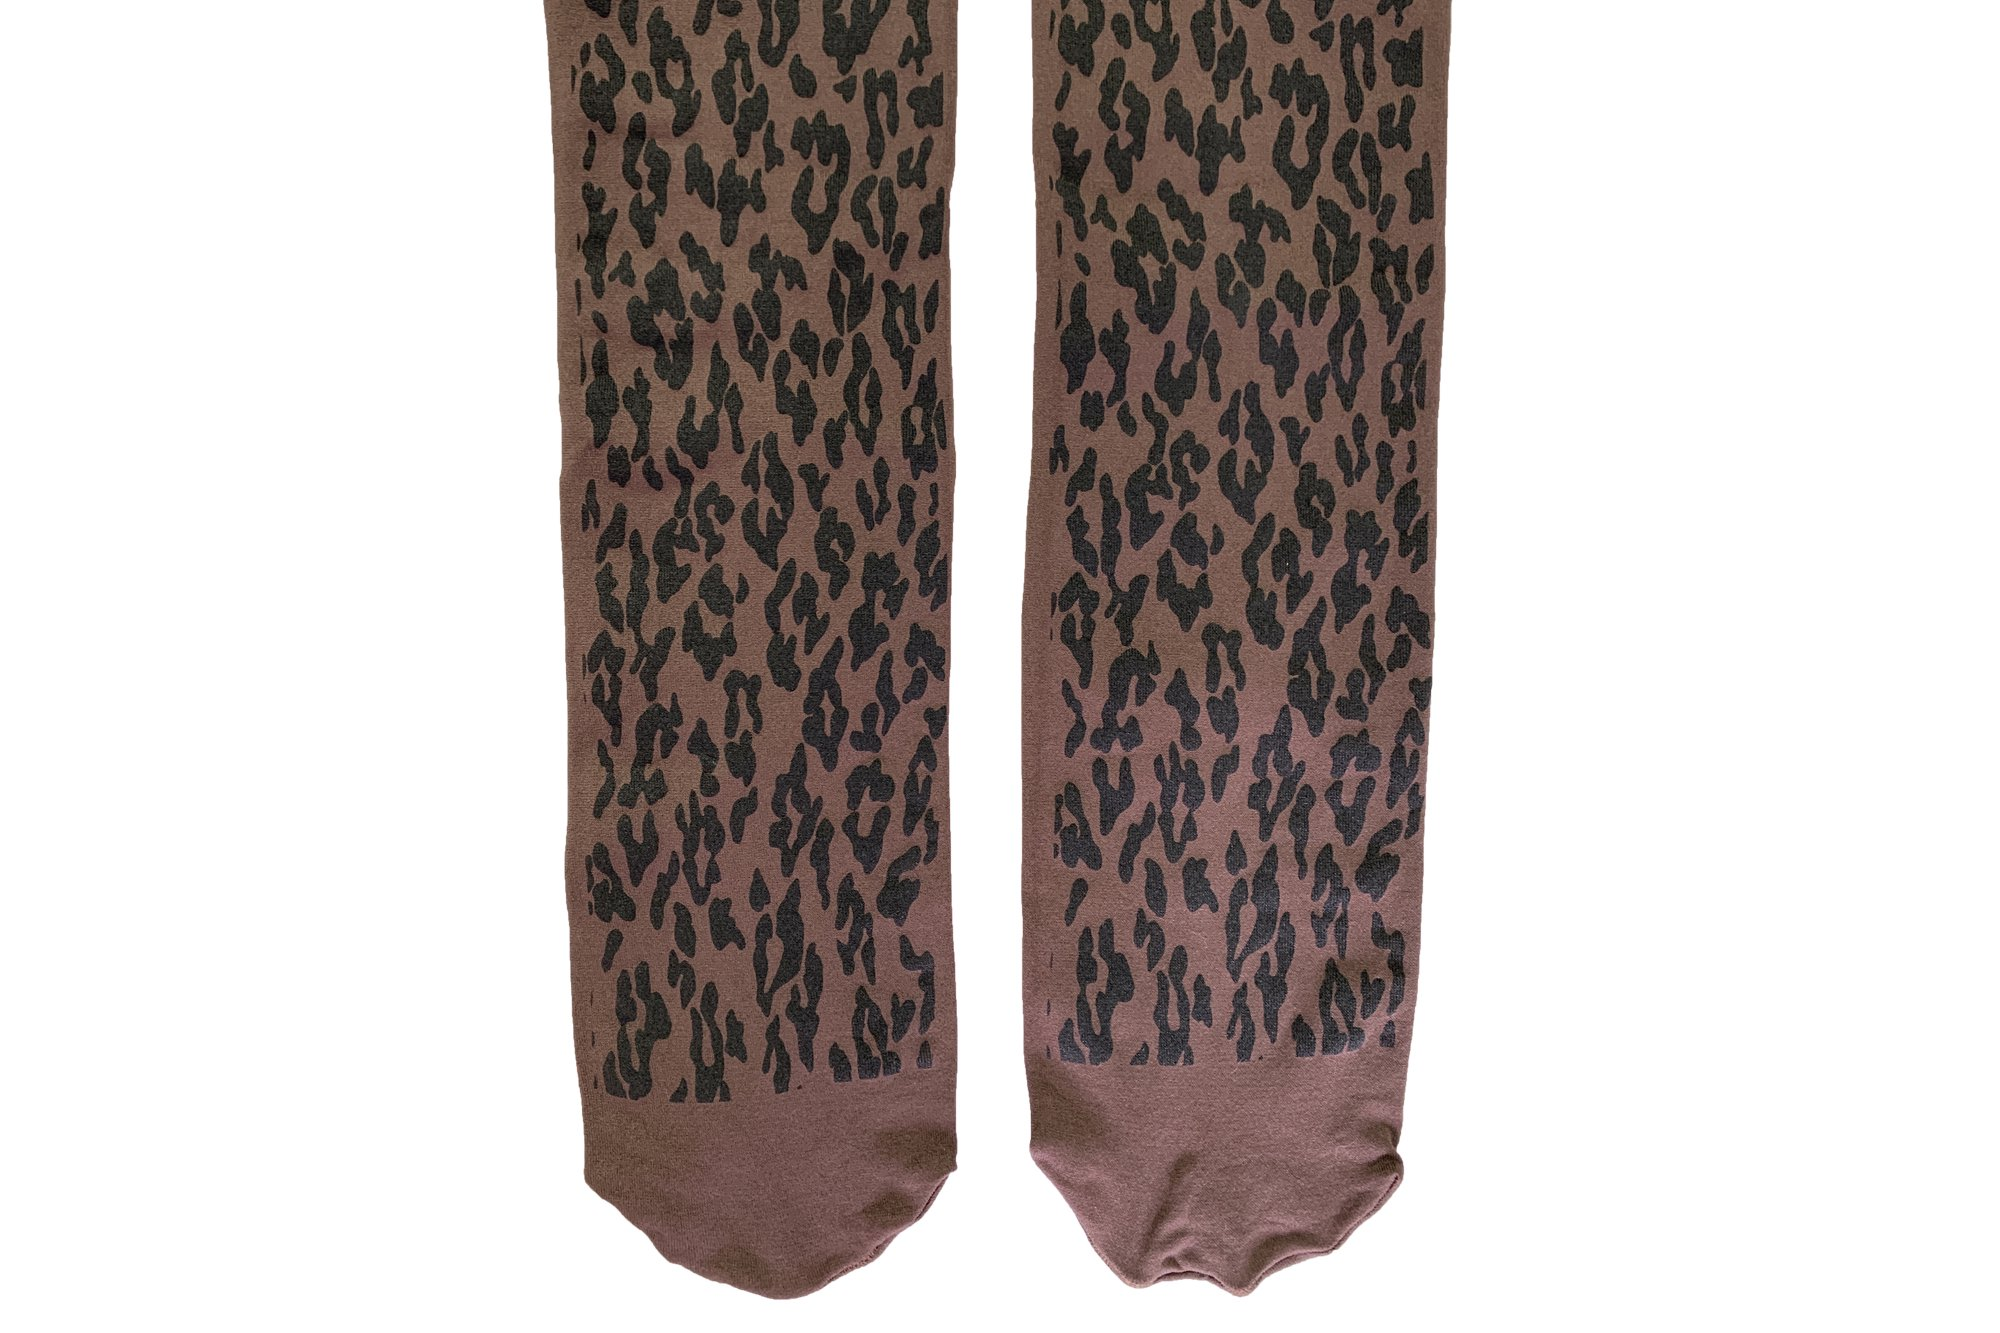 <b><font color='red'>NEW</font></b><br>LEOPARD TIGHTS<br>BROWN